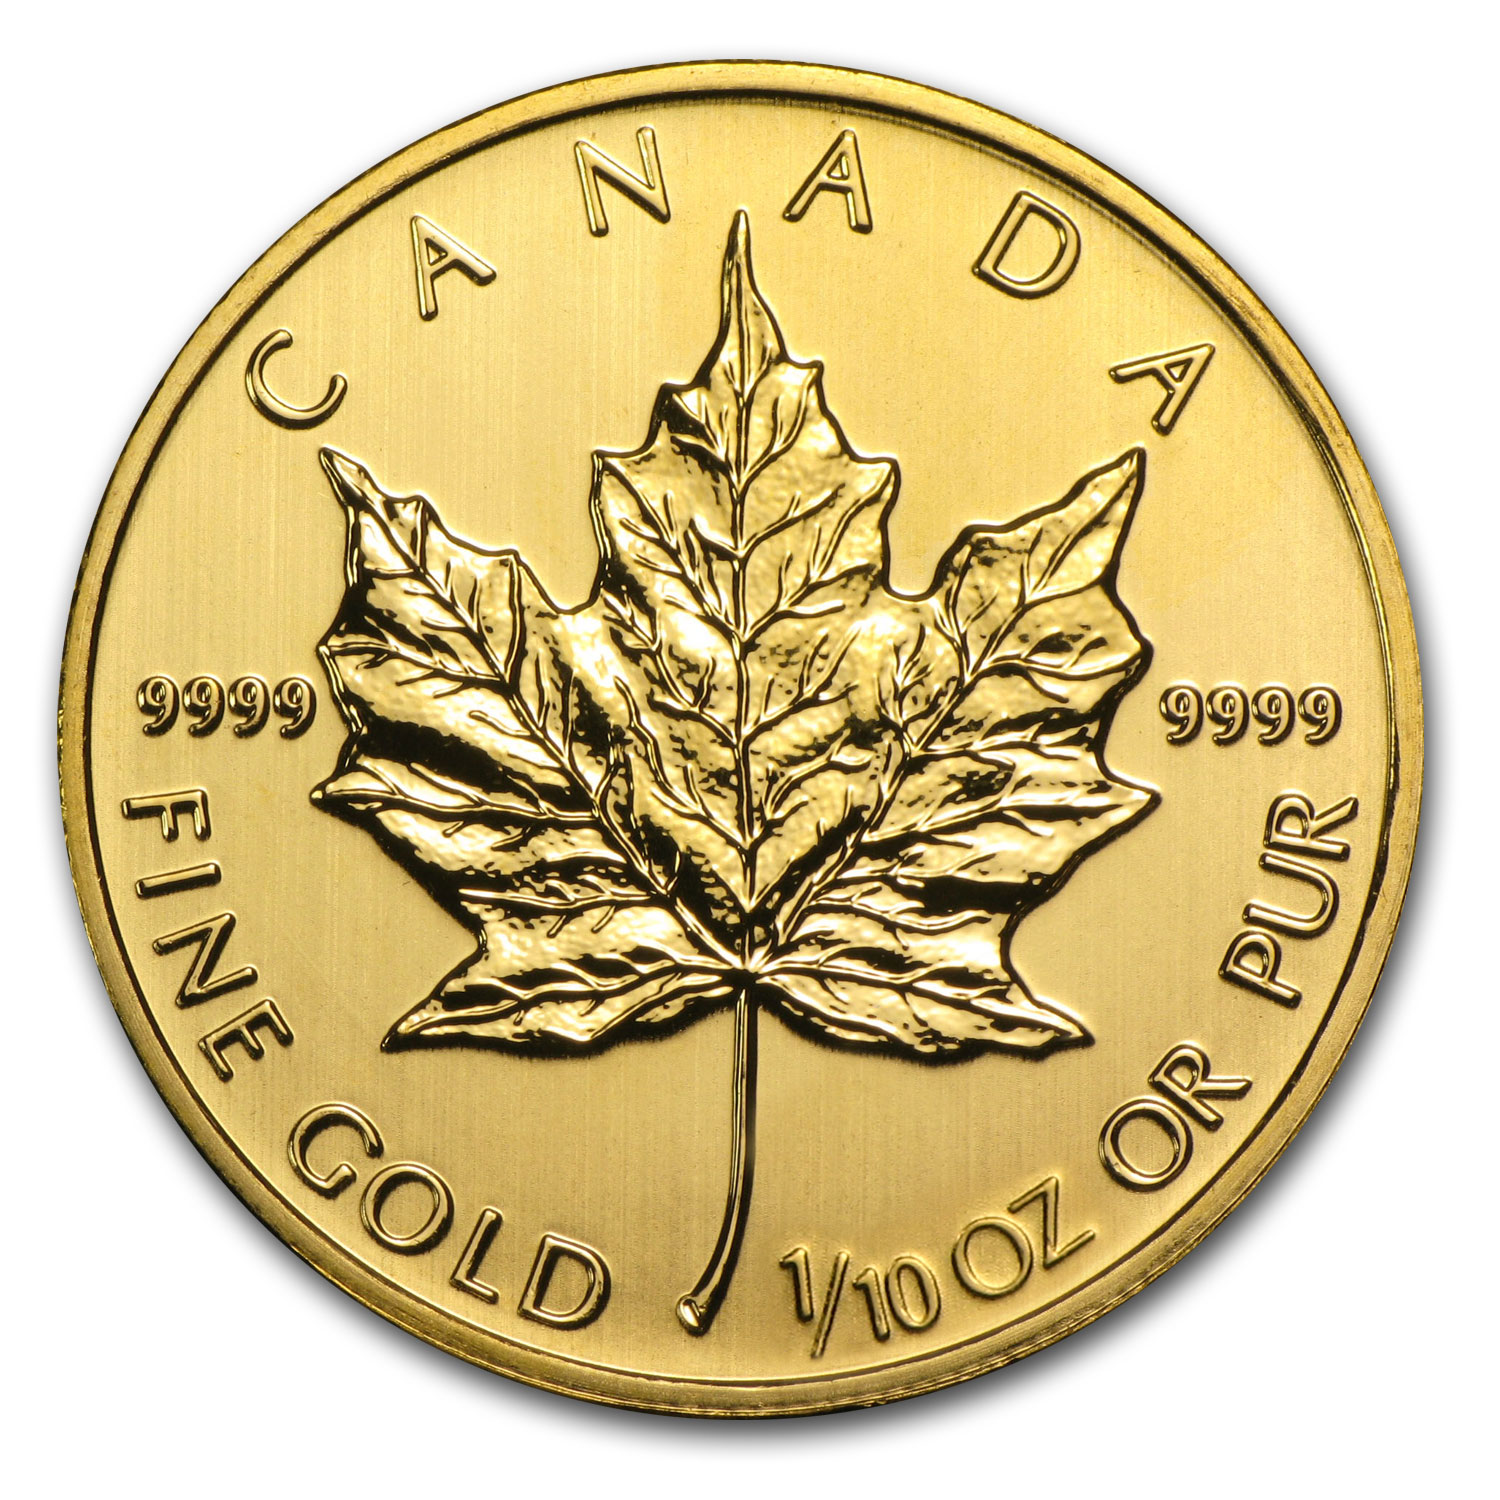 2014 Canada 1/10 oz Gold Maple Leaf BU